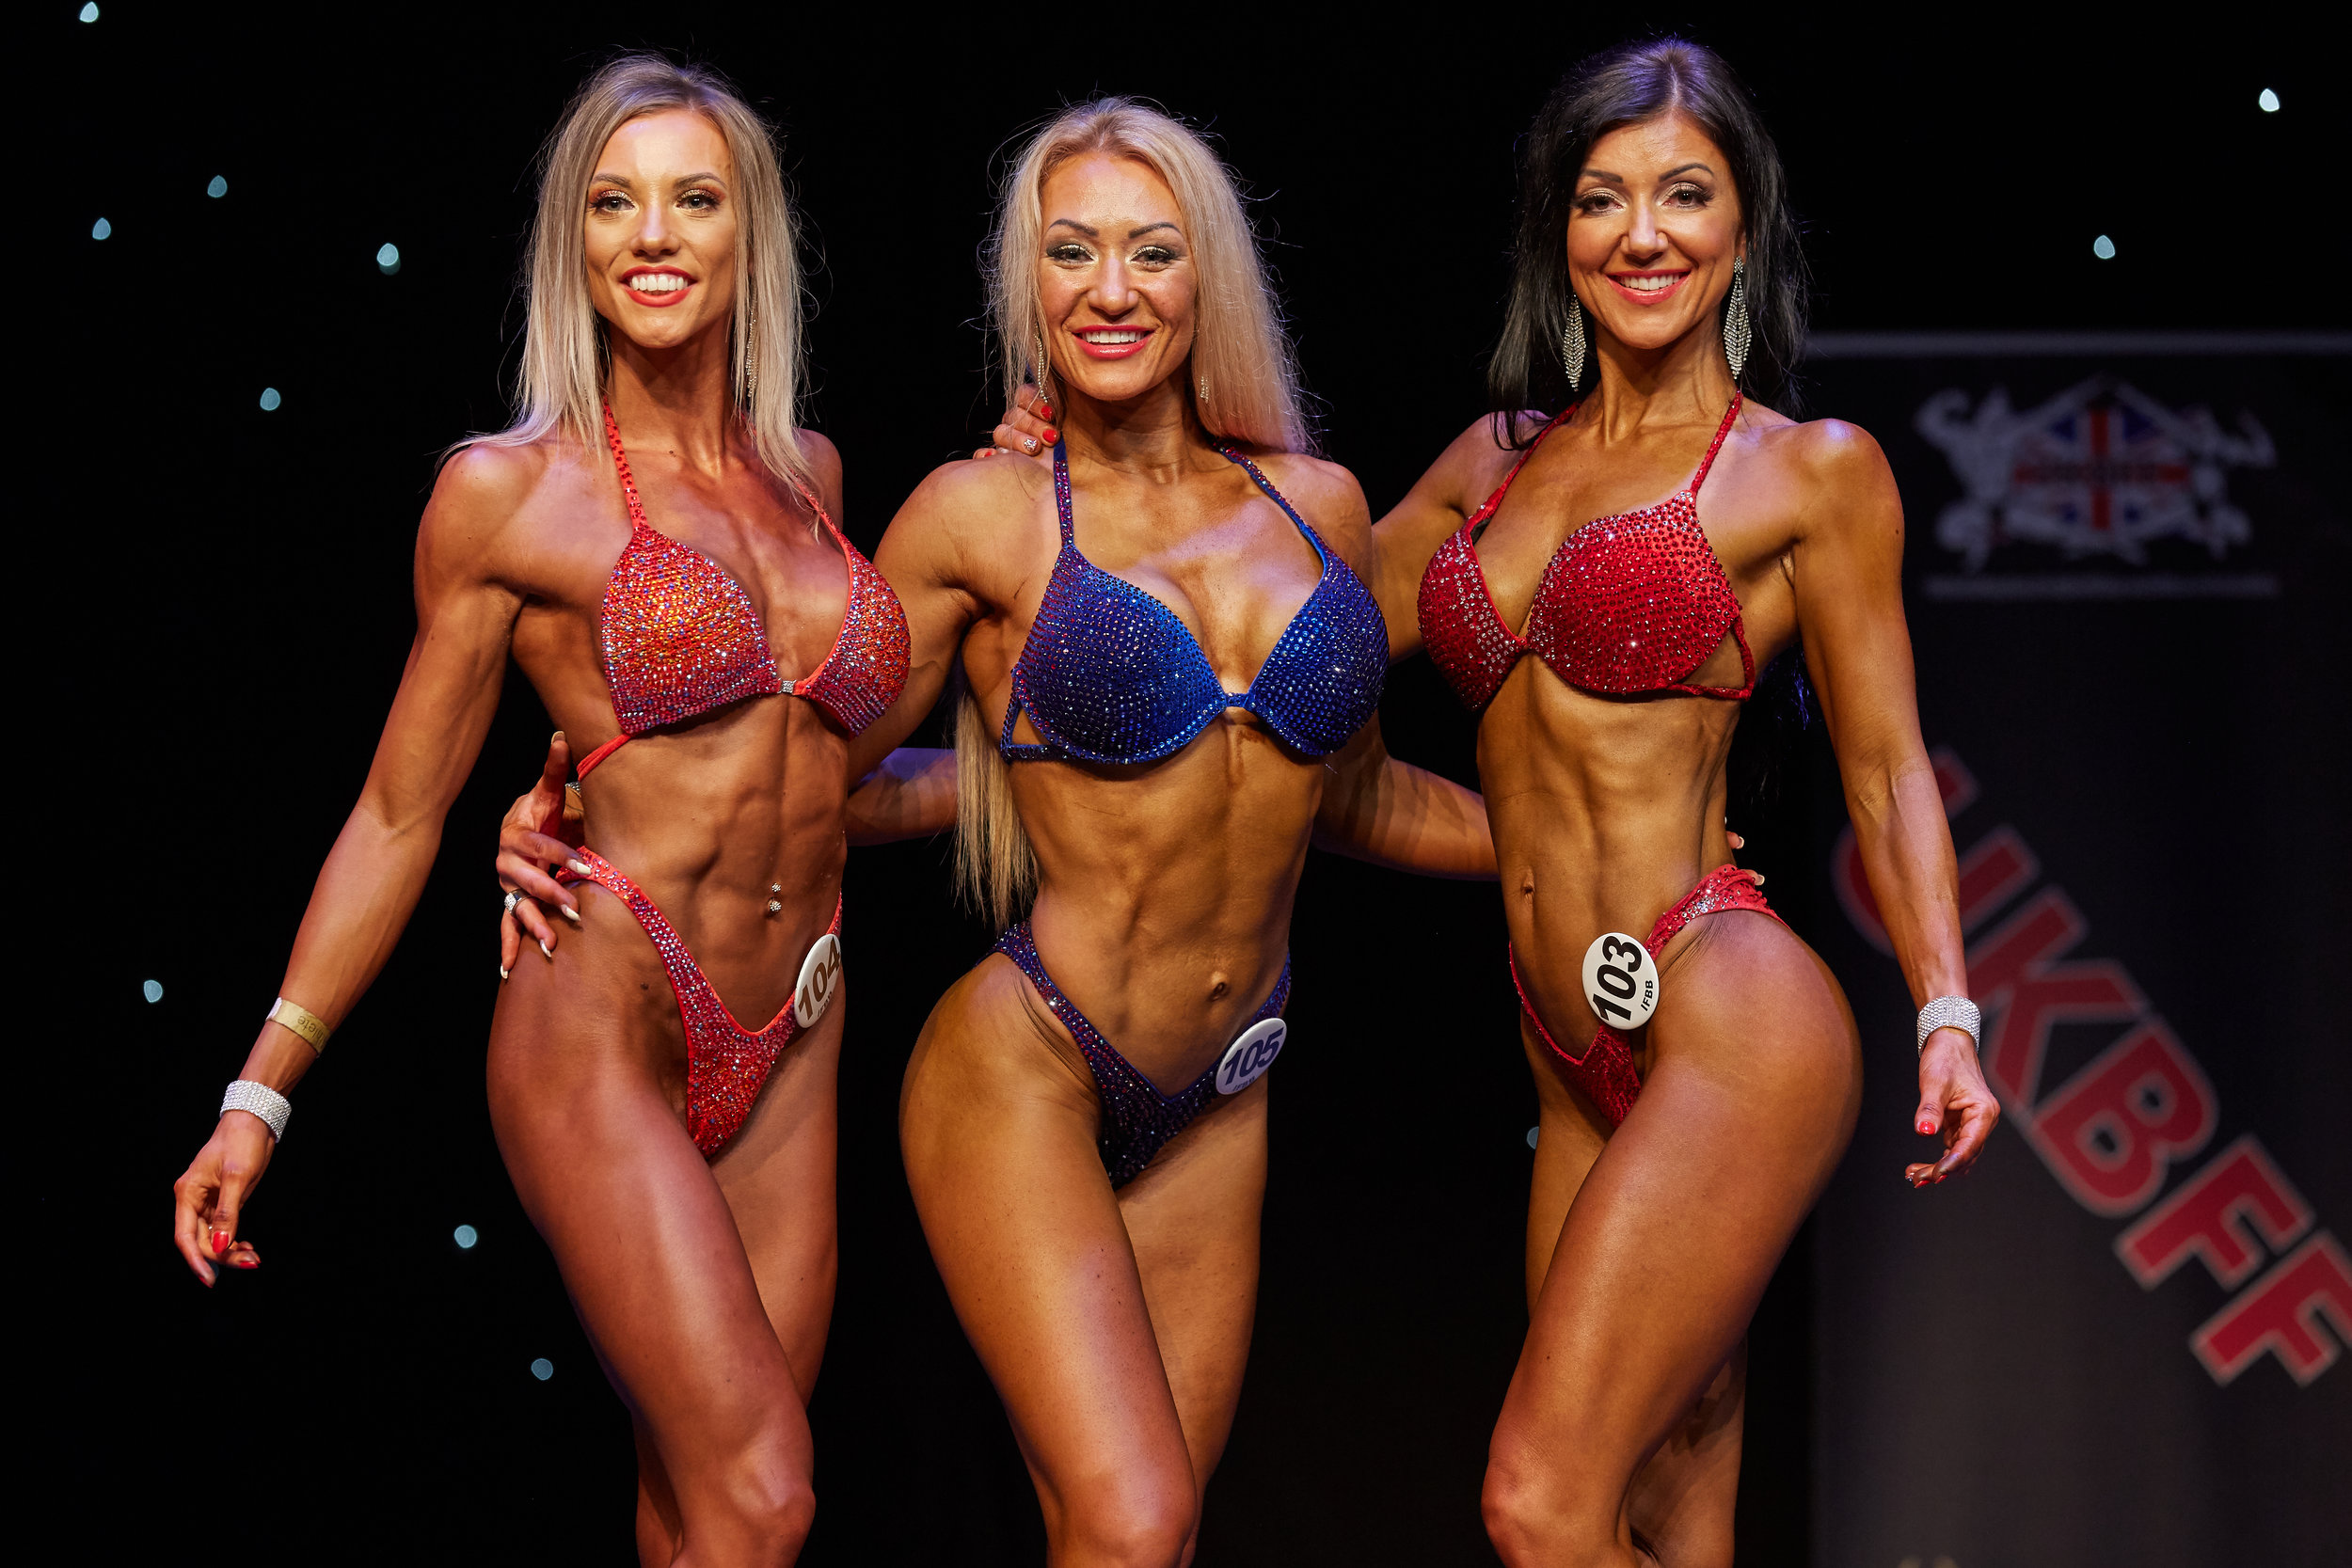 Ernestina Portnaja wins bikini fitness up to 164 cm, flanked by 2nd place Szilvia Babinszki (right) and Alice Richardson, who was third.